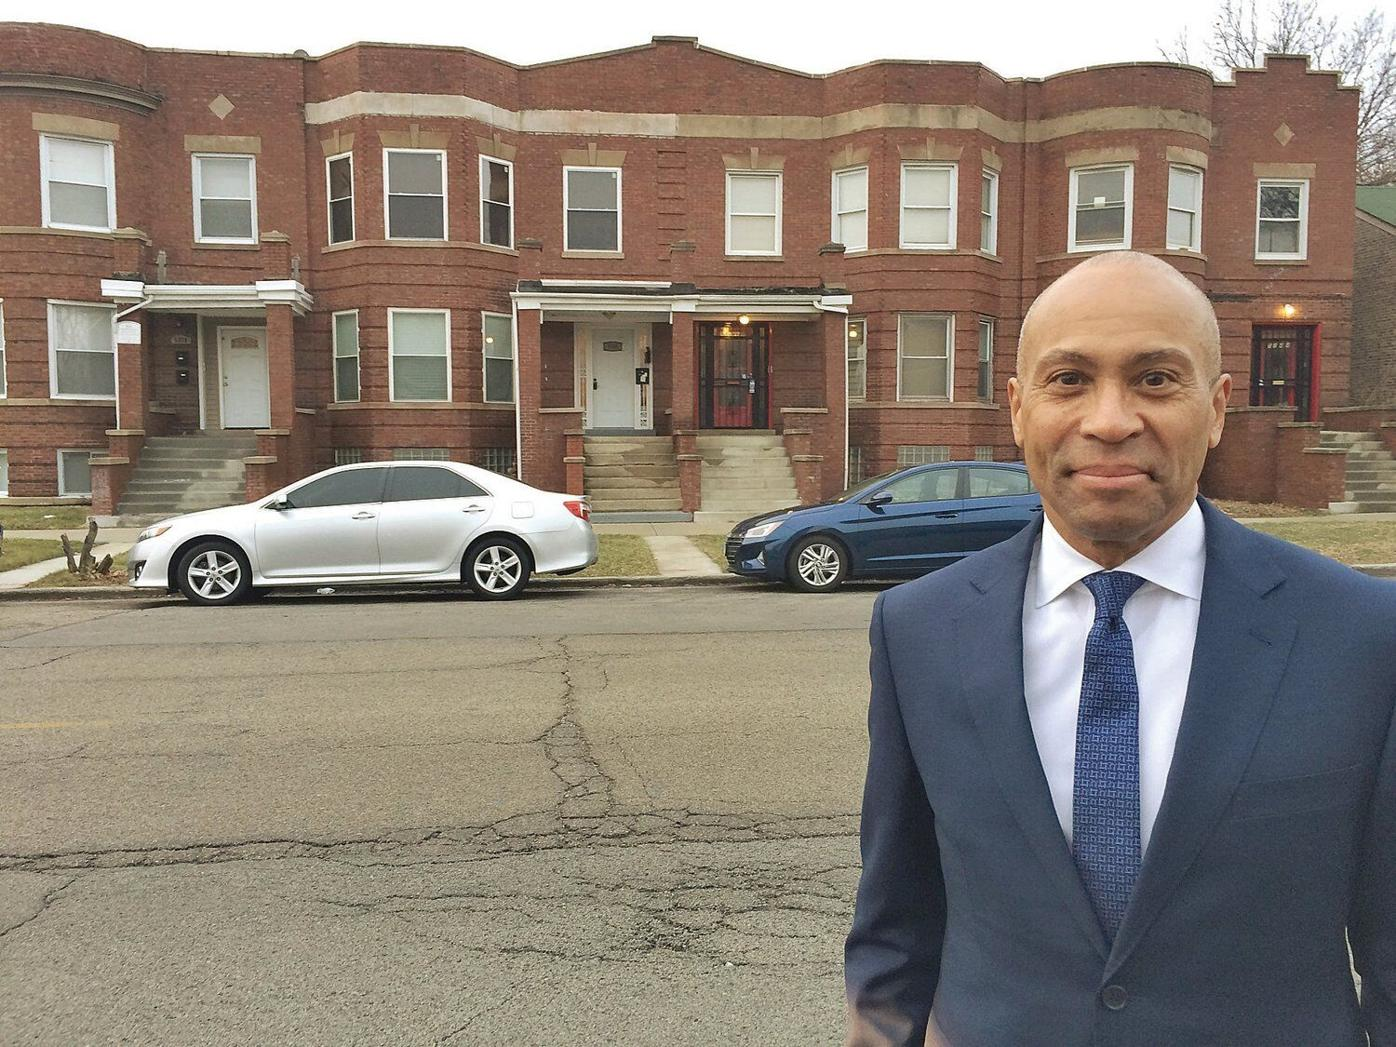 Patrick, back in former Chicago neighborhood, studies up on economic barriers